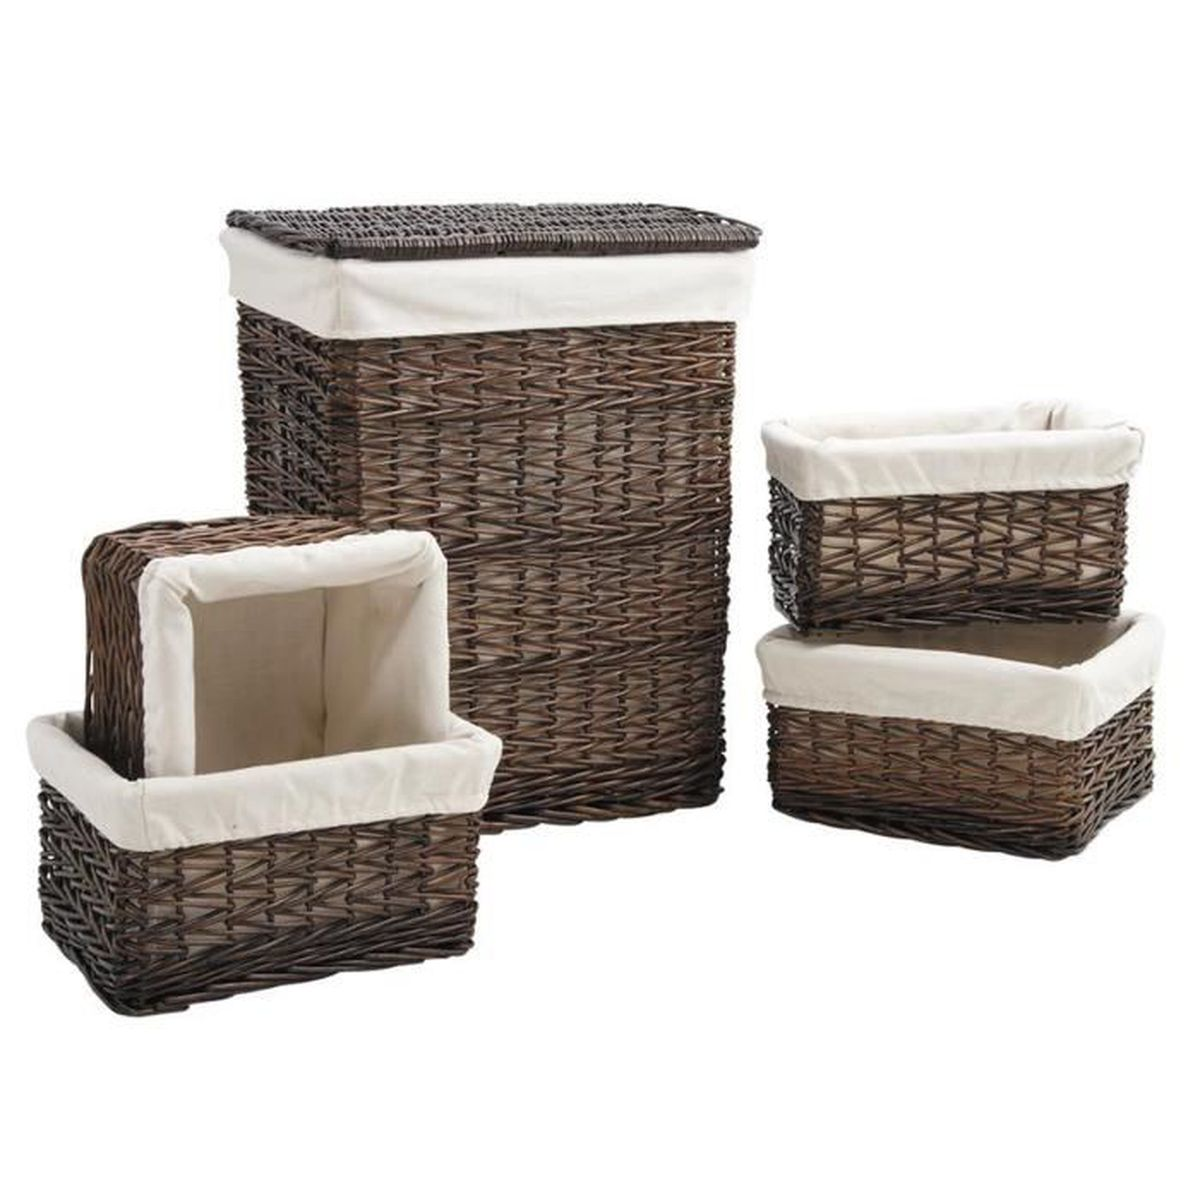 panier linge 4 corbeilles de rangement en osier. Black Bedroom Furniture Sets. Home Design Ideas